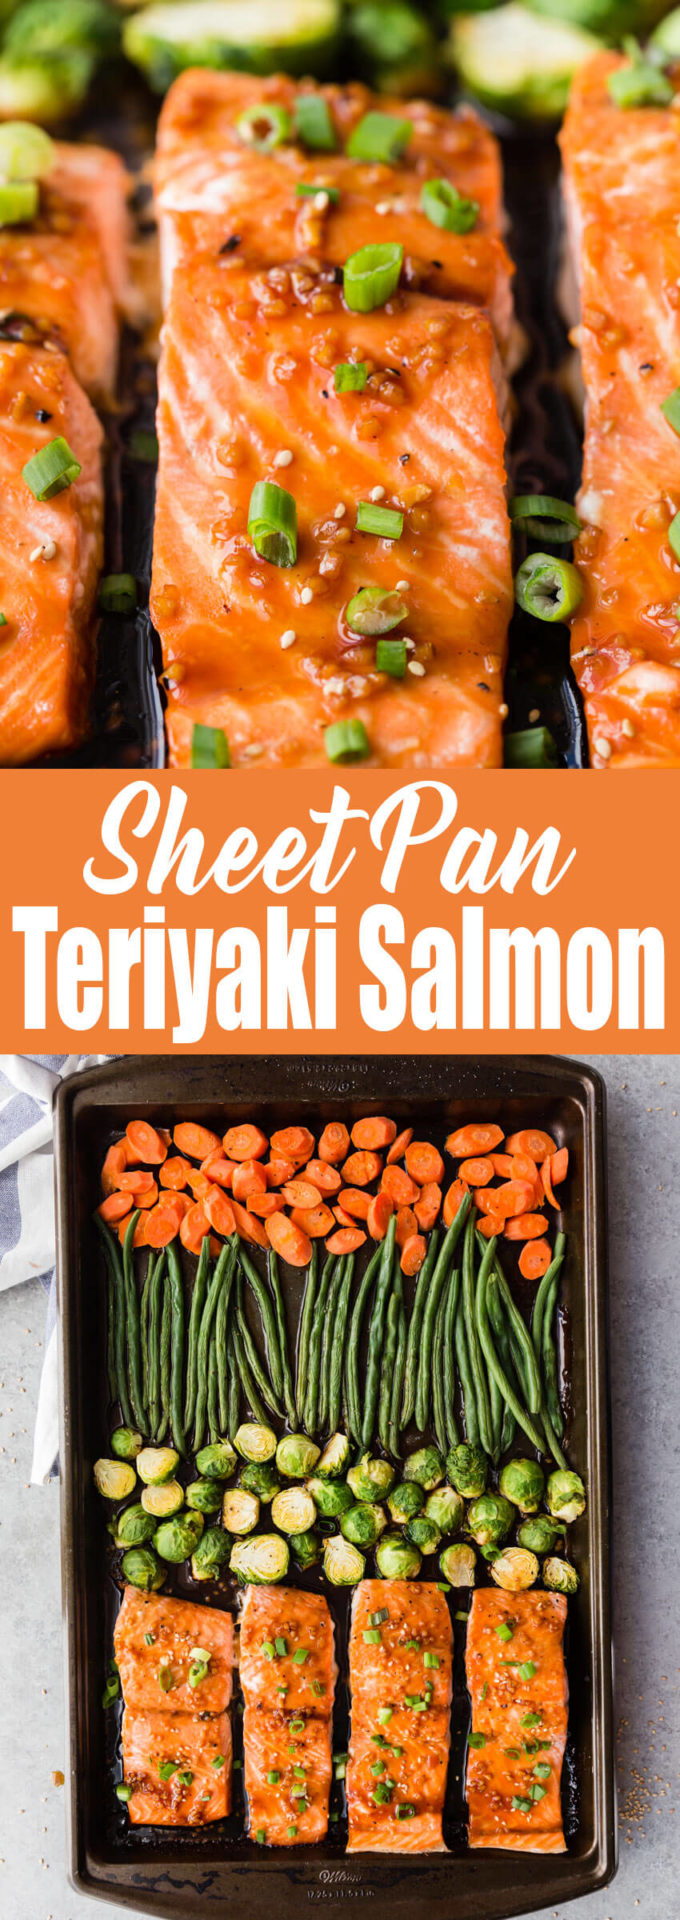 Teriyaki Salmon: An easy and flavorful meal prep dish with very little clean up! You get flaky, delightful salmon, and roasted veggies.